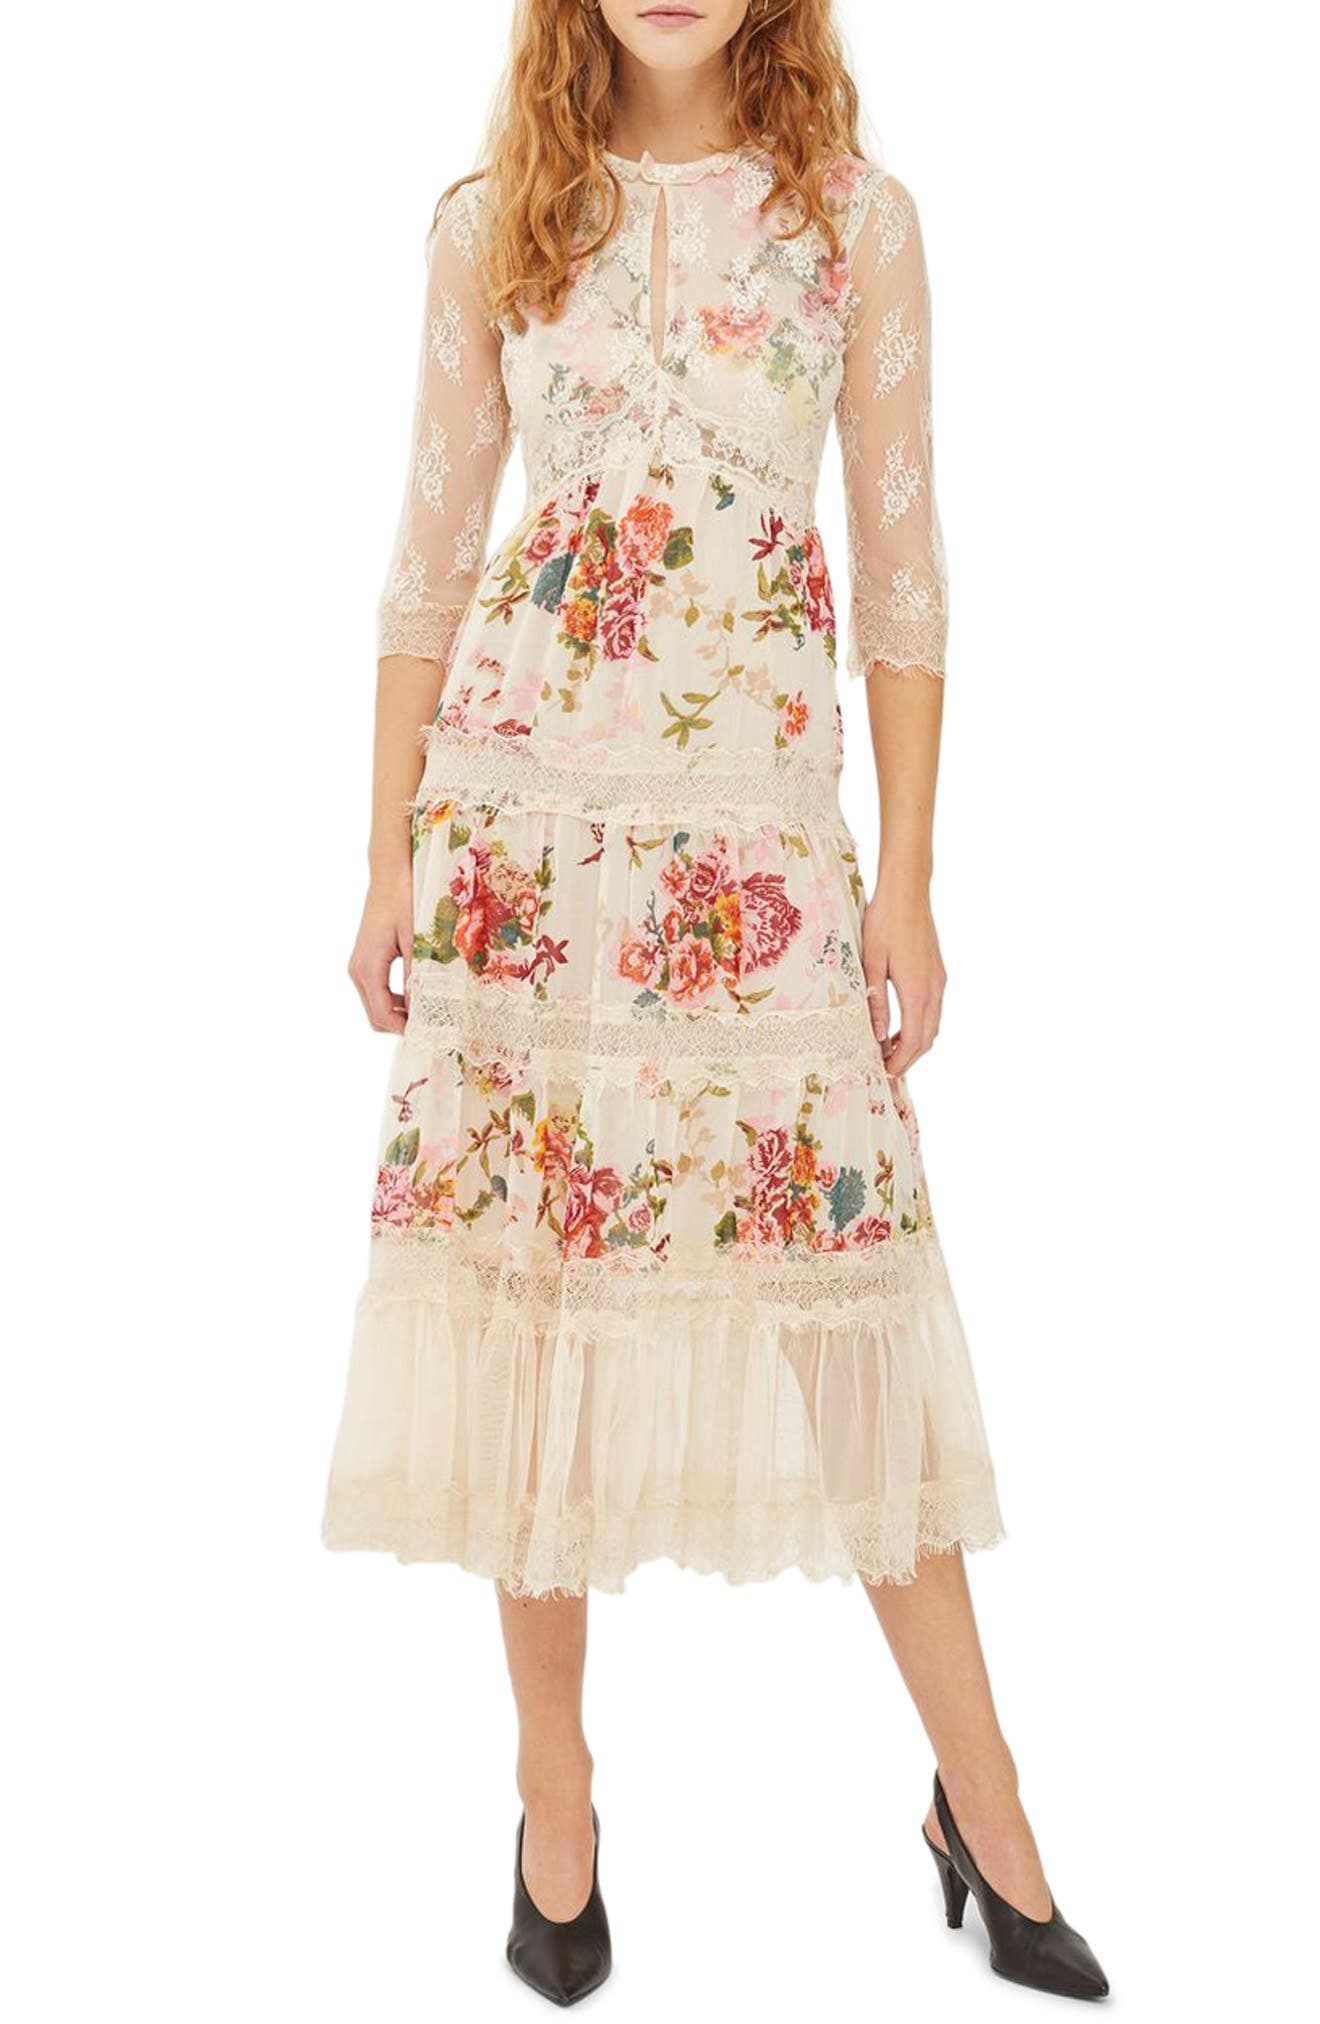 Lace Tier Floral Midi Dress,                         Main,                         color, Ivory Multi